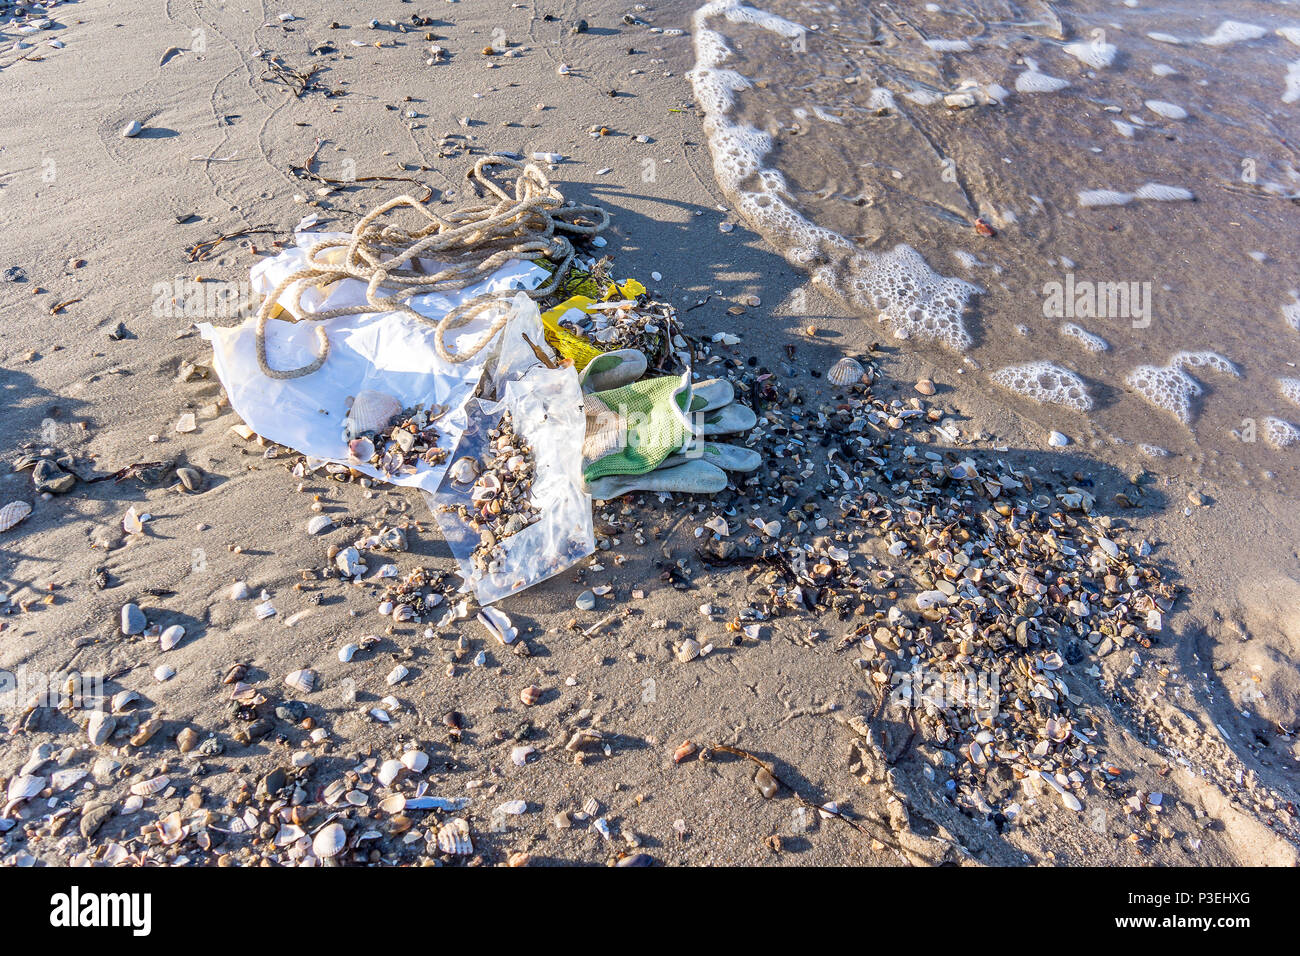 A plastic bottle and other rubbish on the sand close to the sea,  a closeup of a polluted beach, Vejle, Denmark, June 6, 2018 - Stock Image